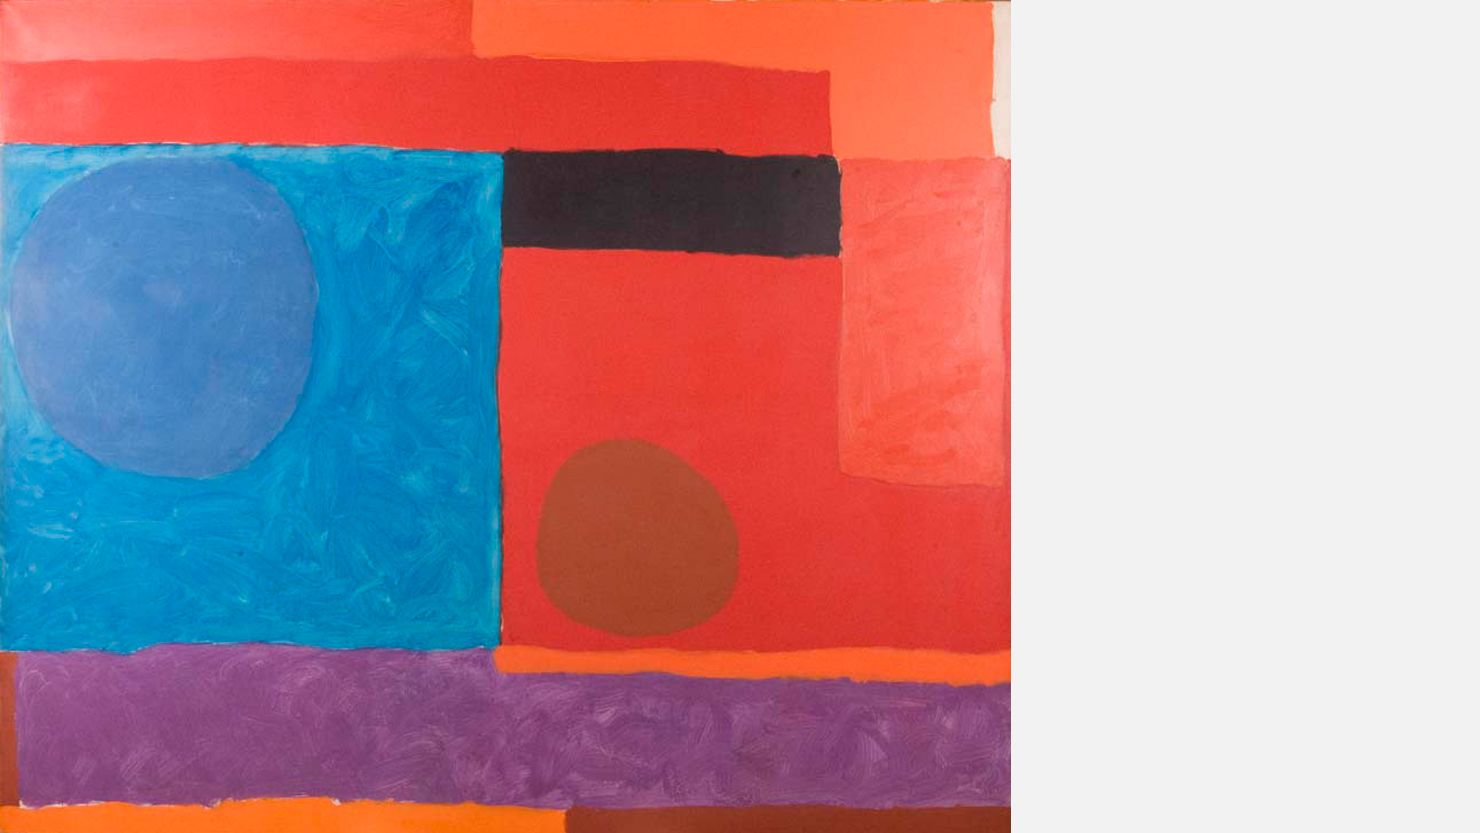 Rectilinear Reds and Blues, 1963 by Patrick Heron